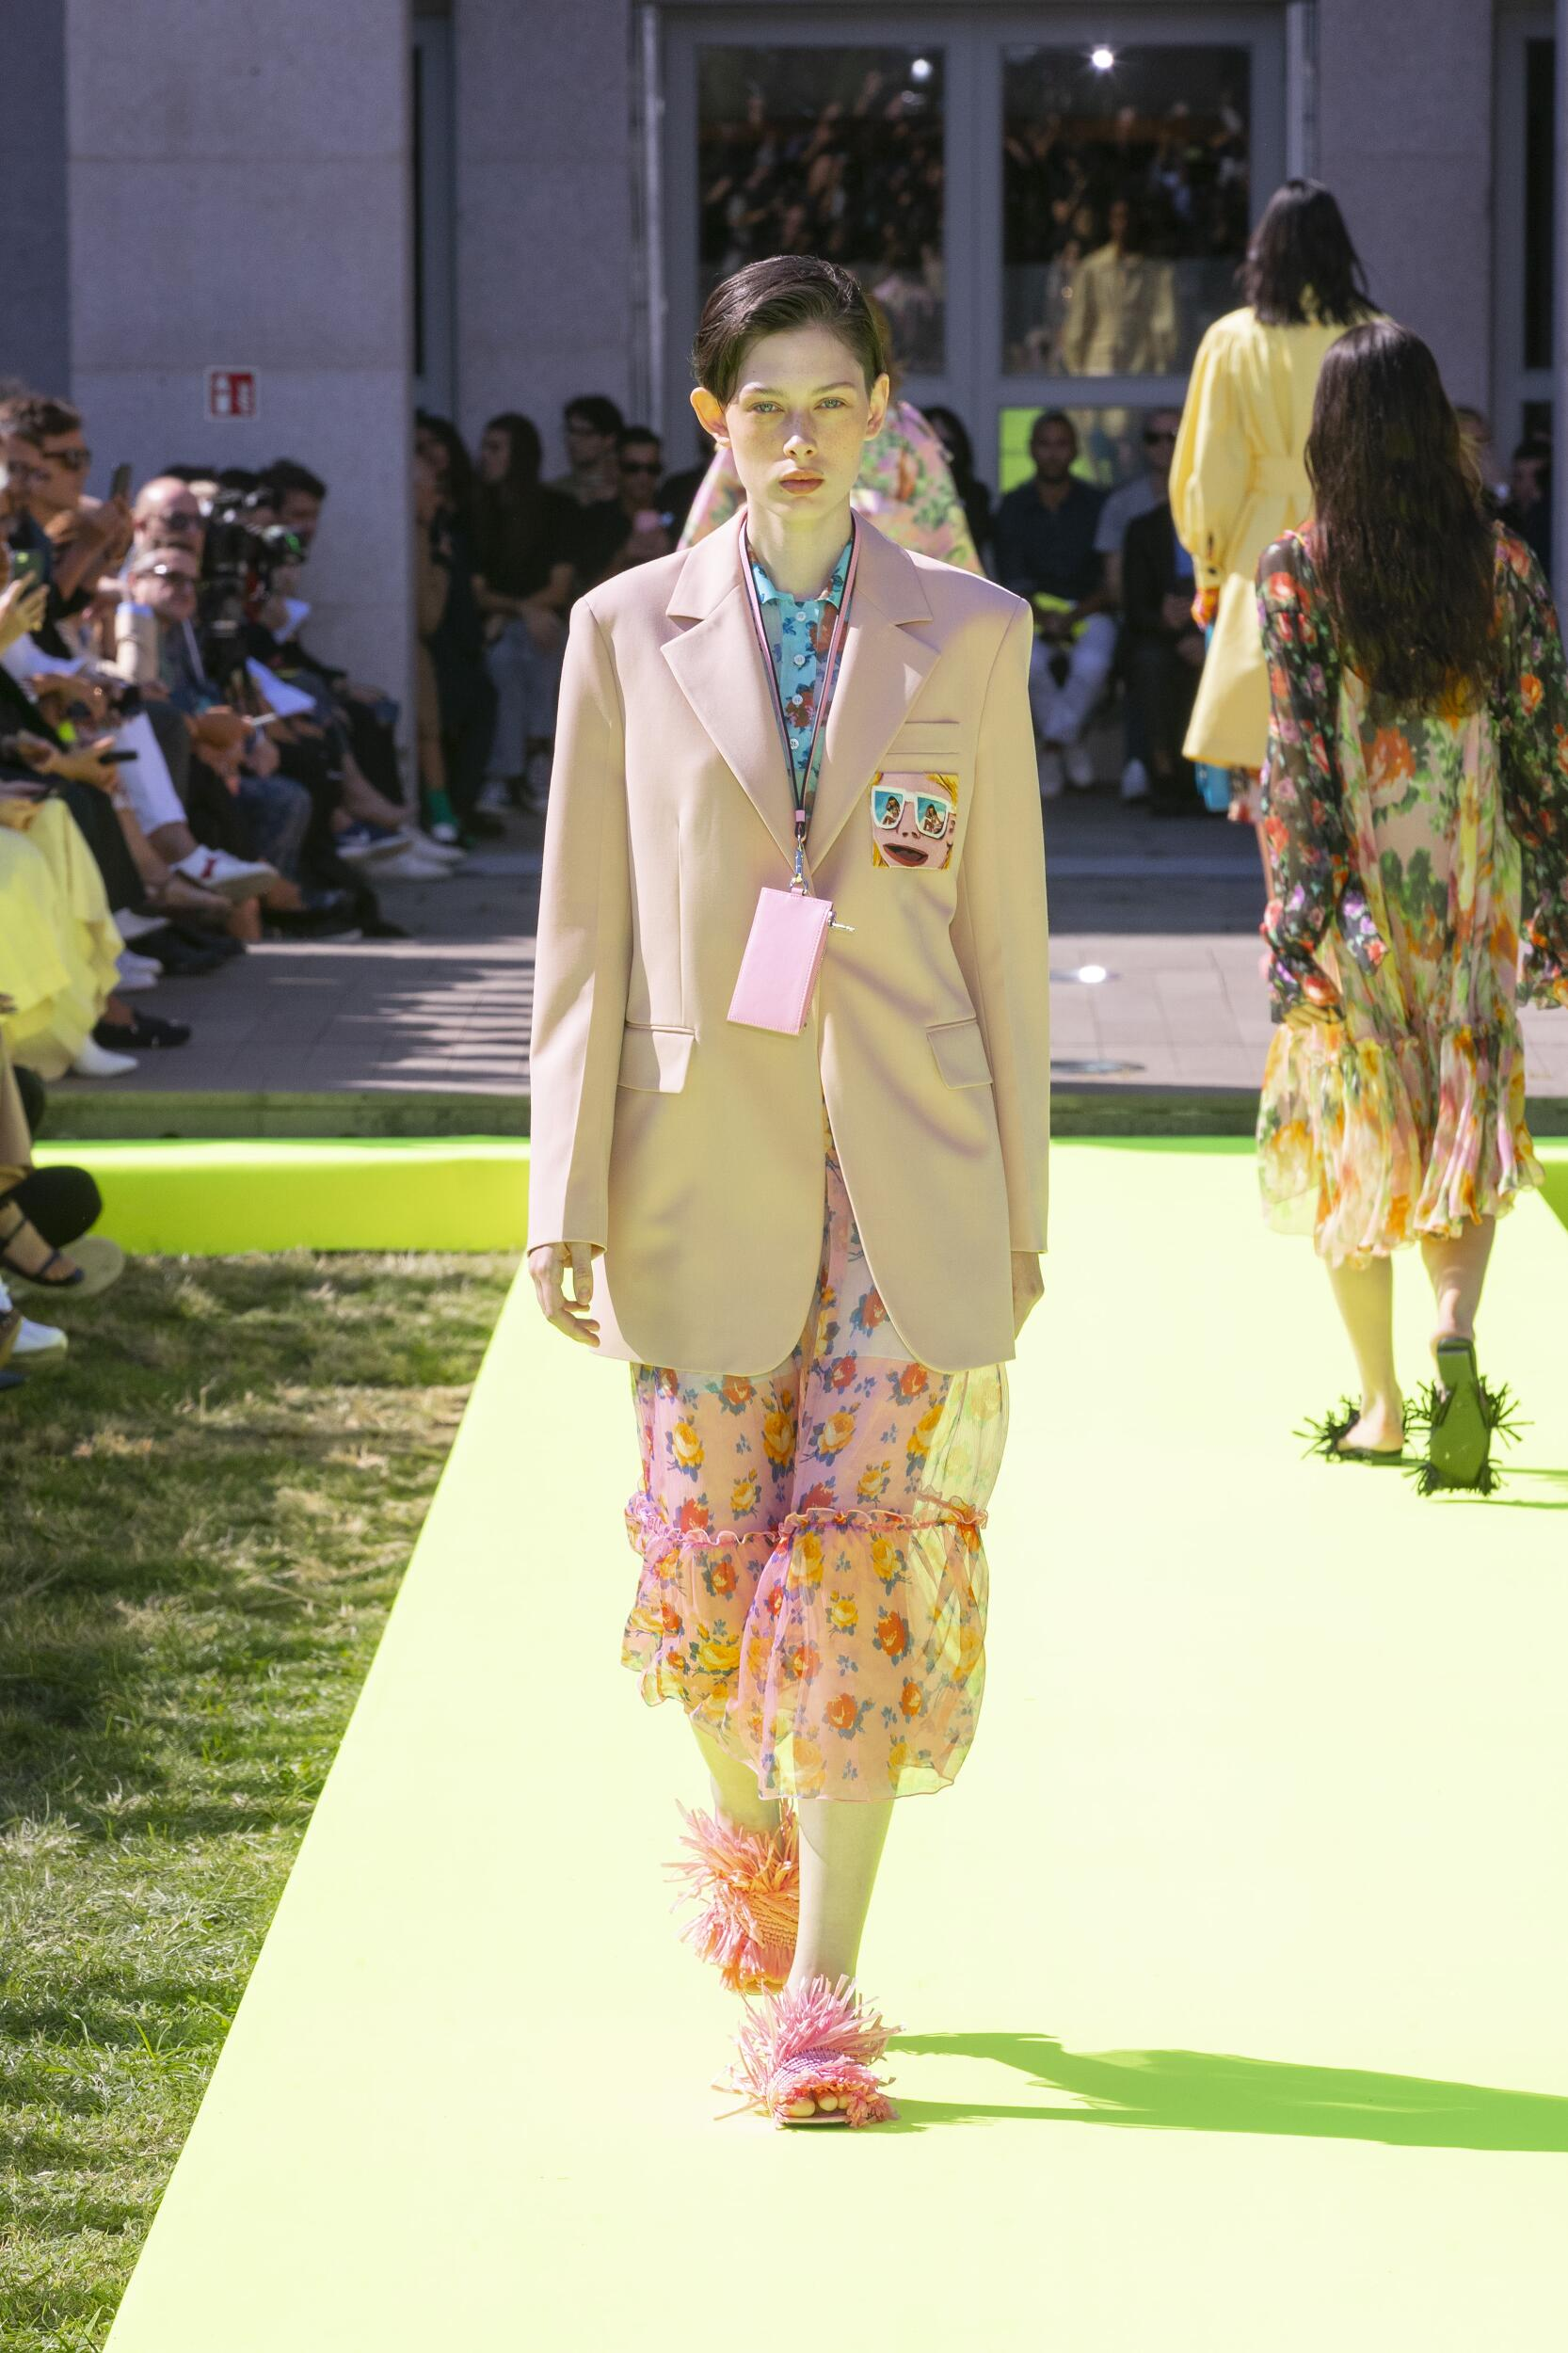 Msgm Women's Collection 2020